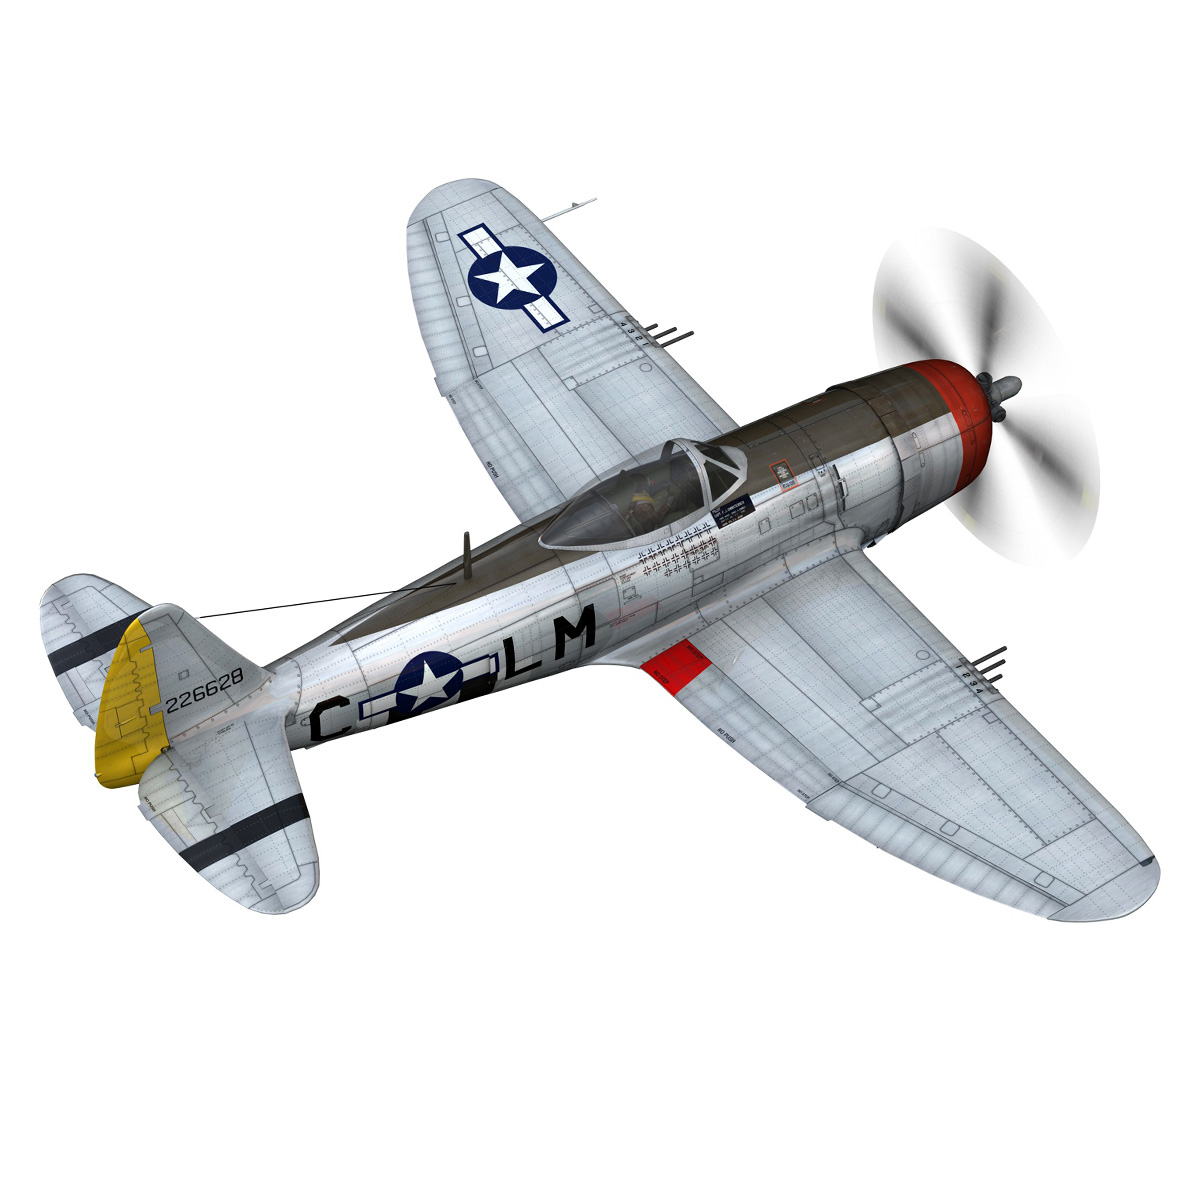 Republic P-47D Thunderbolt - Rozzie Geth II 3d model  279774